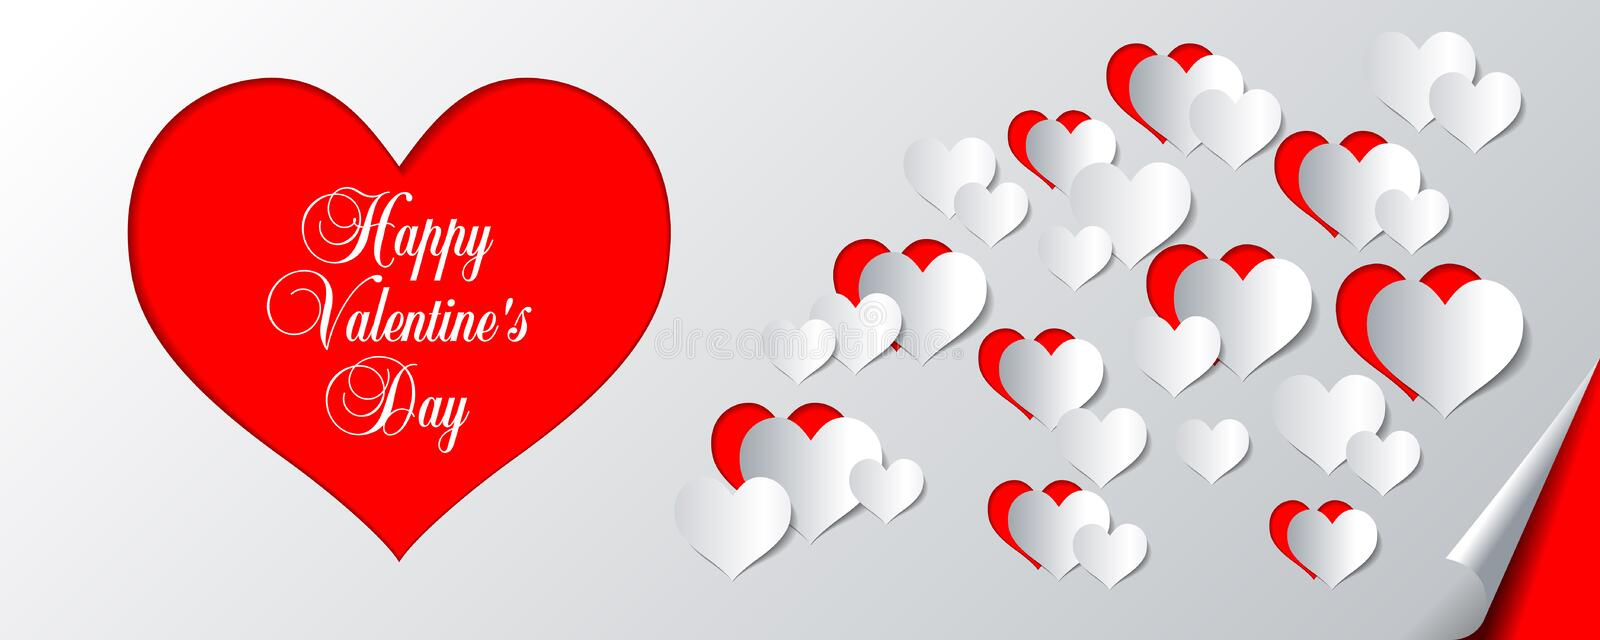 Happy Valentines Day calligraphic text vector illustration banner, flyer, poster, voucher, website header template with paper hear vector illustration